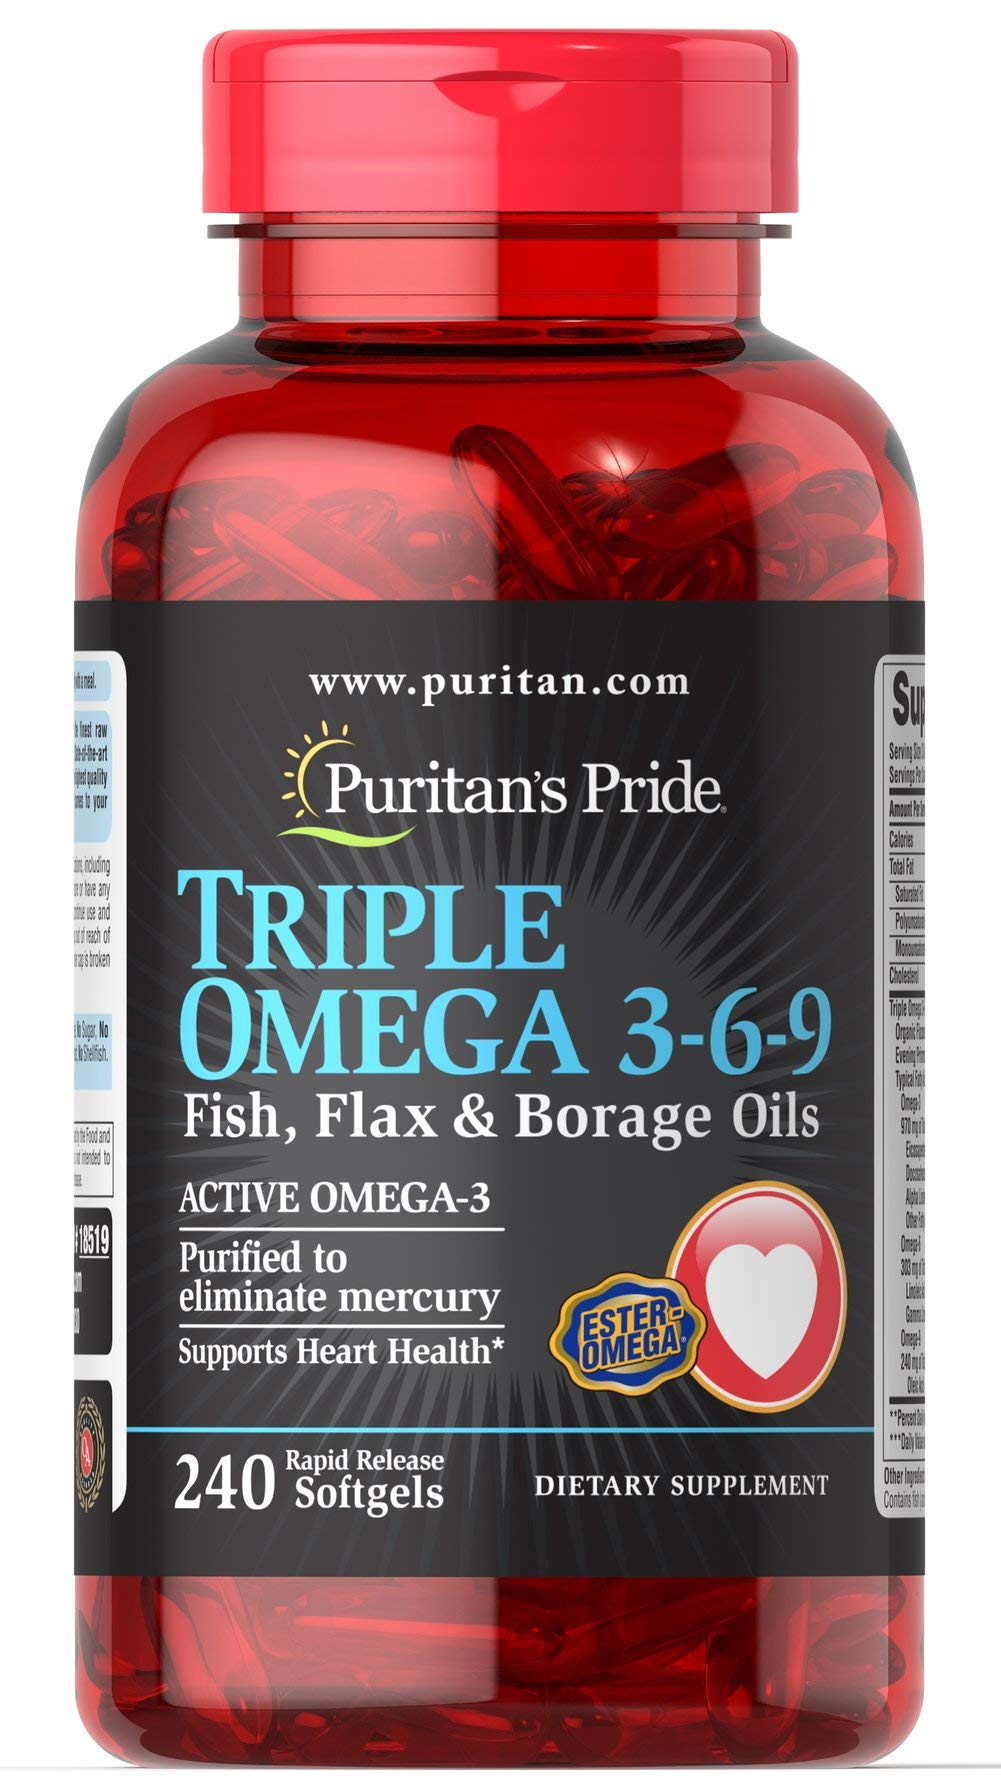 Puritans Pride Triple Omega 3-6-9 Fish, Flax & Borage Oils, 240 Count by Puritans Pride